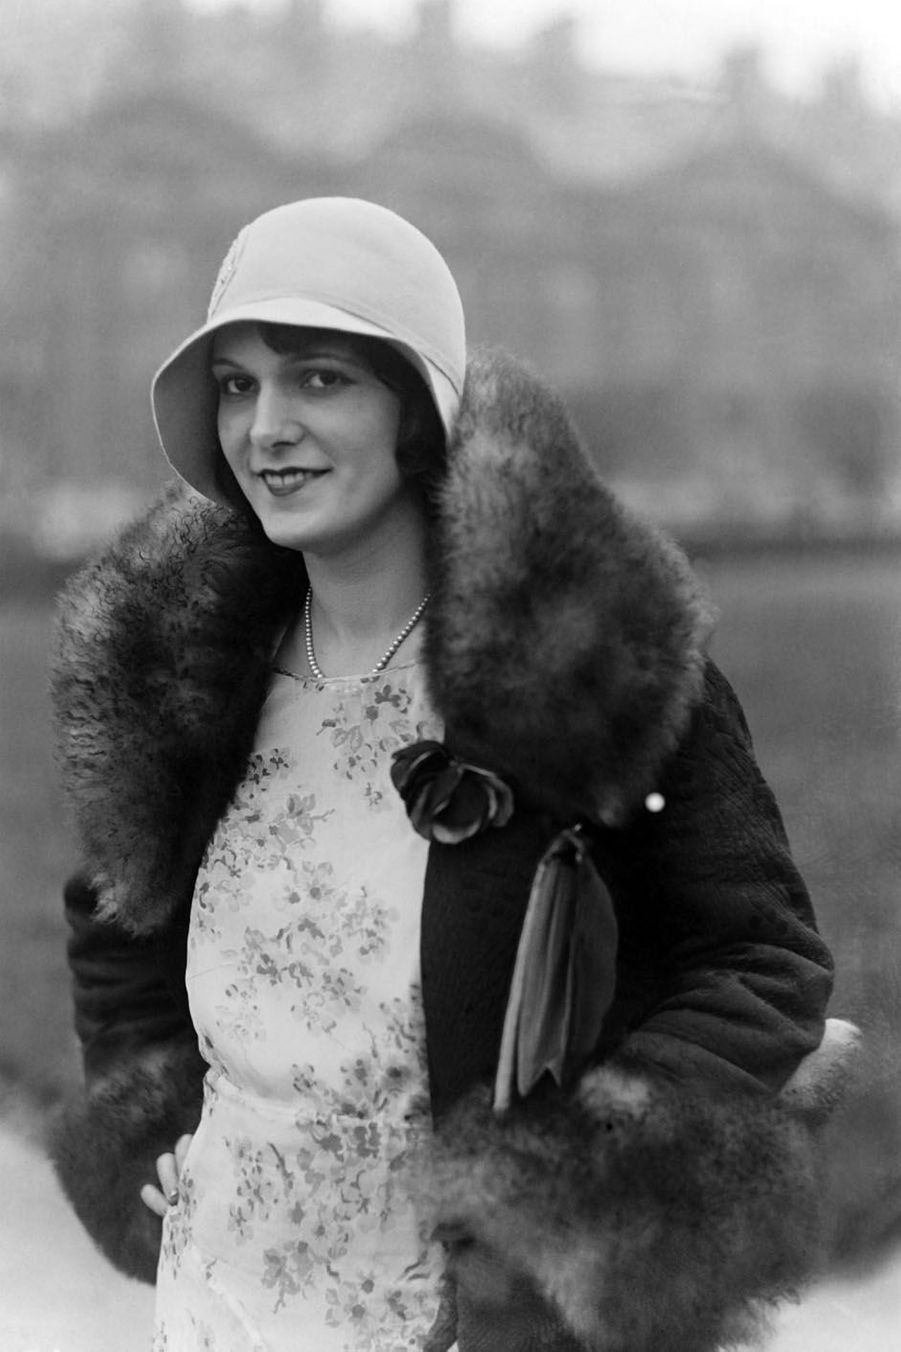 Yvette Labrousse Miss France 1930